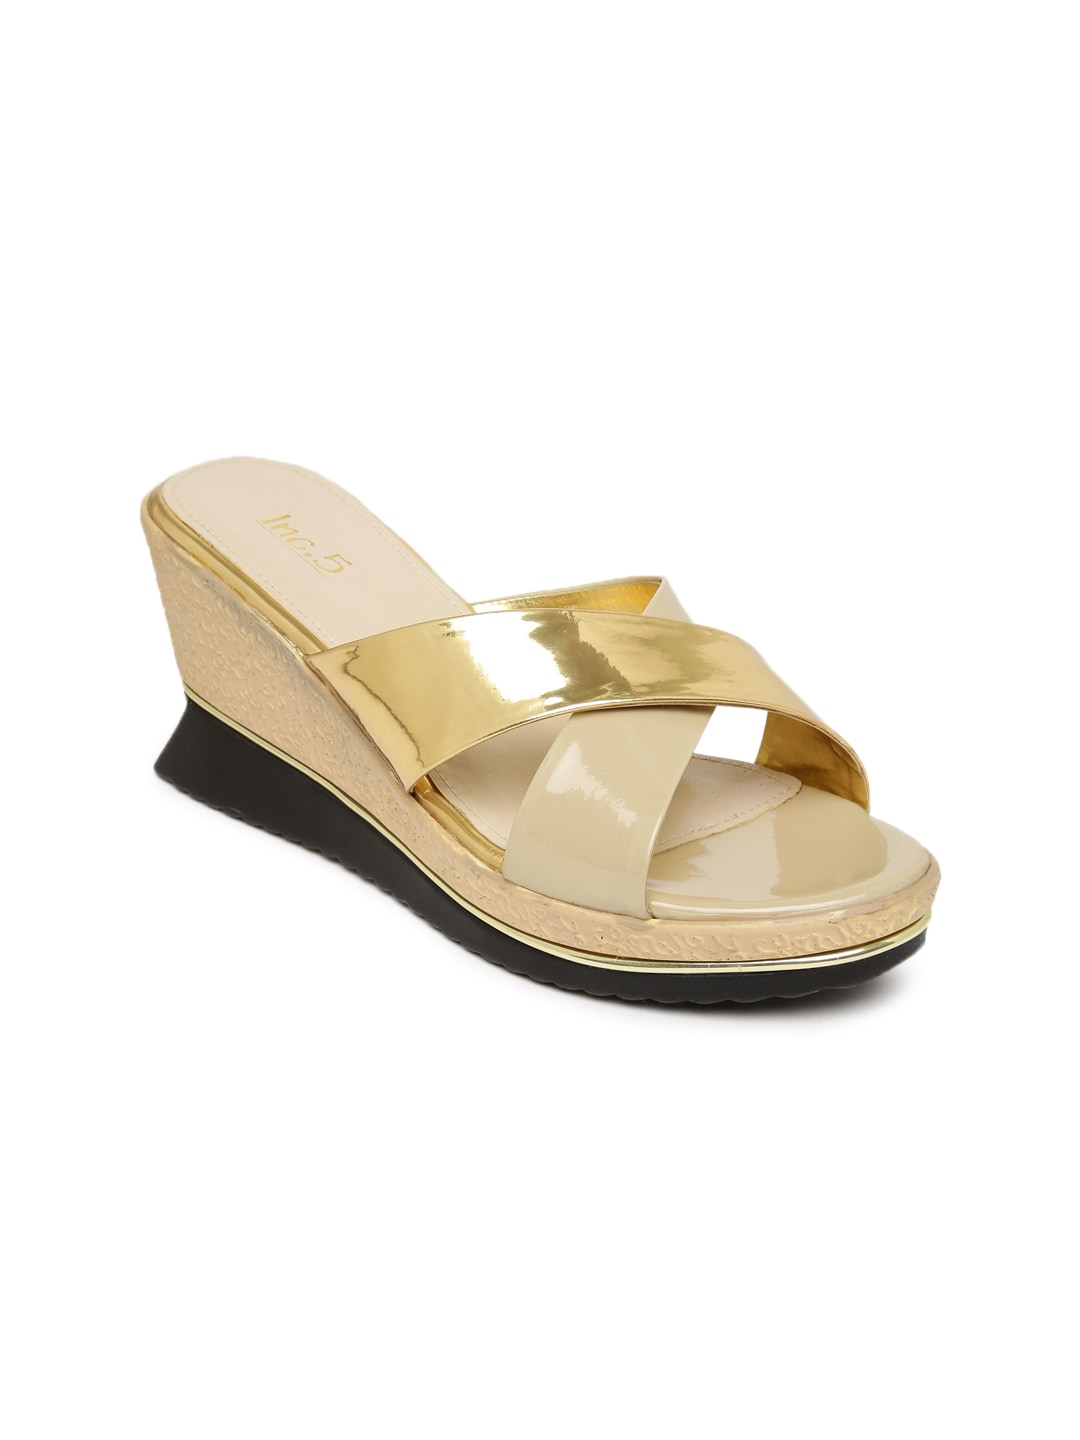 49a0e4f53300 Toe Shoes - Buy Toe Shoes online in India